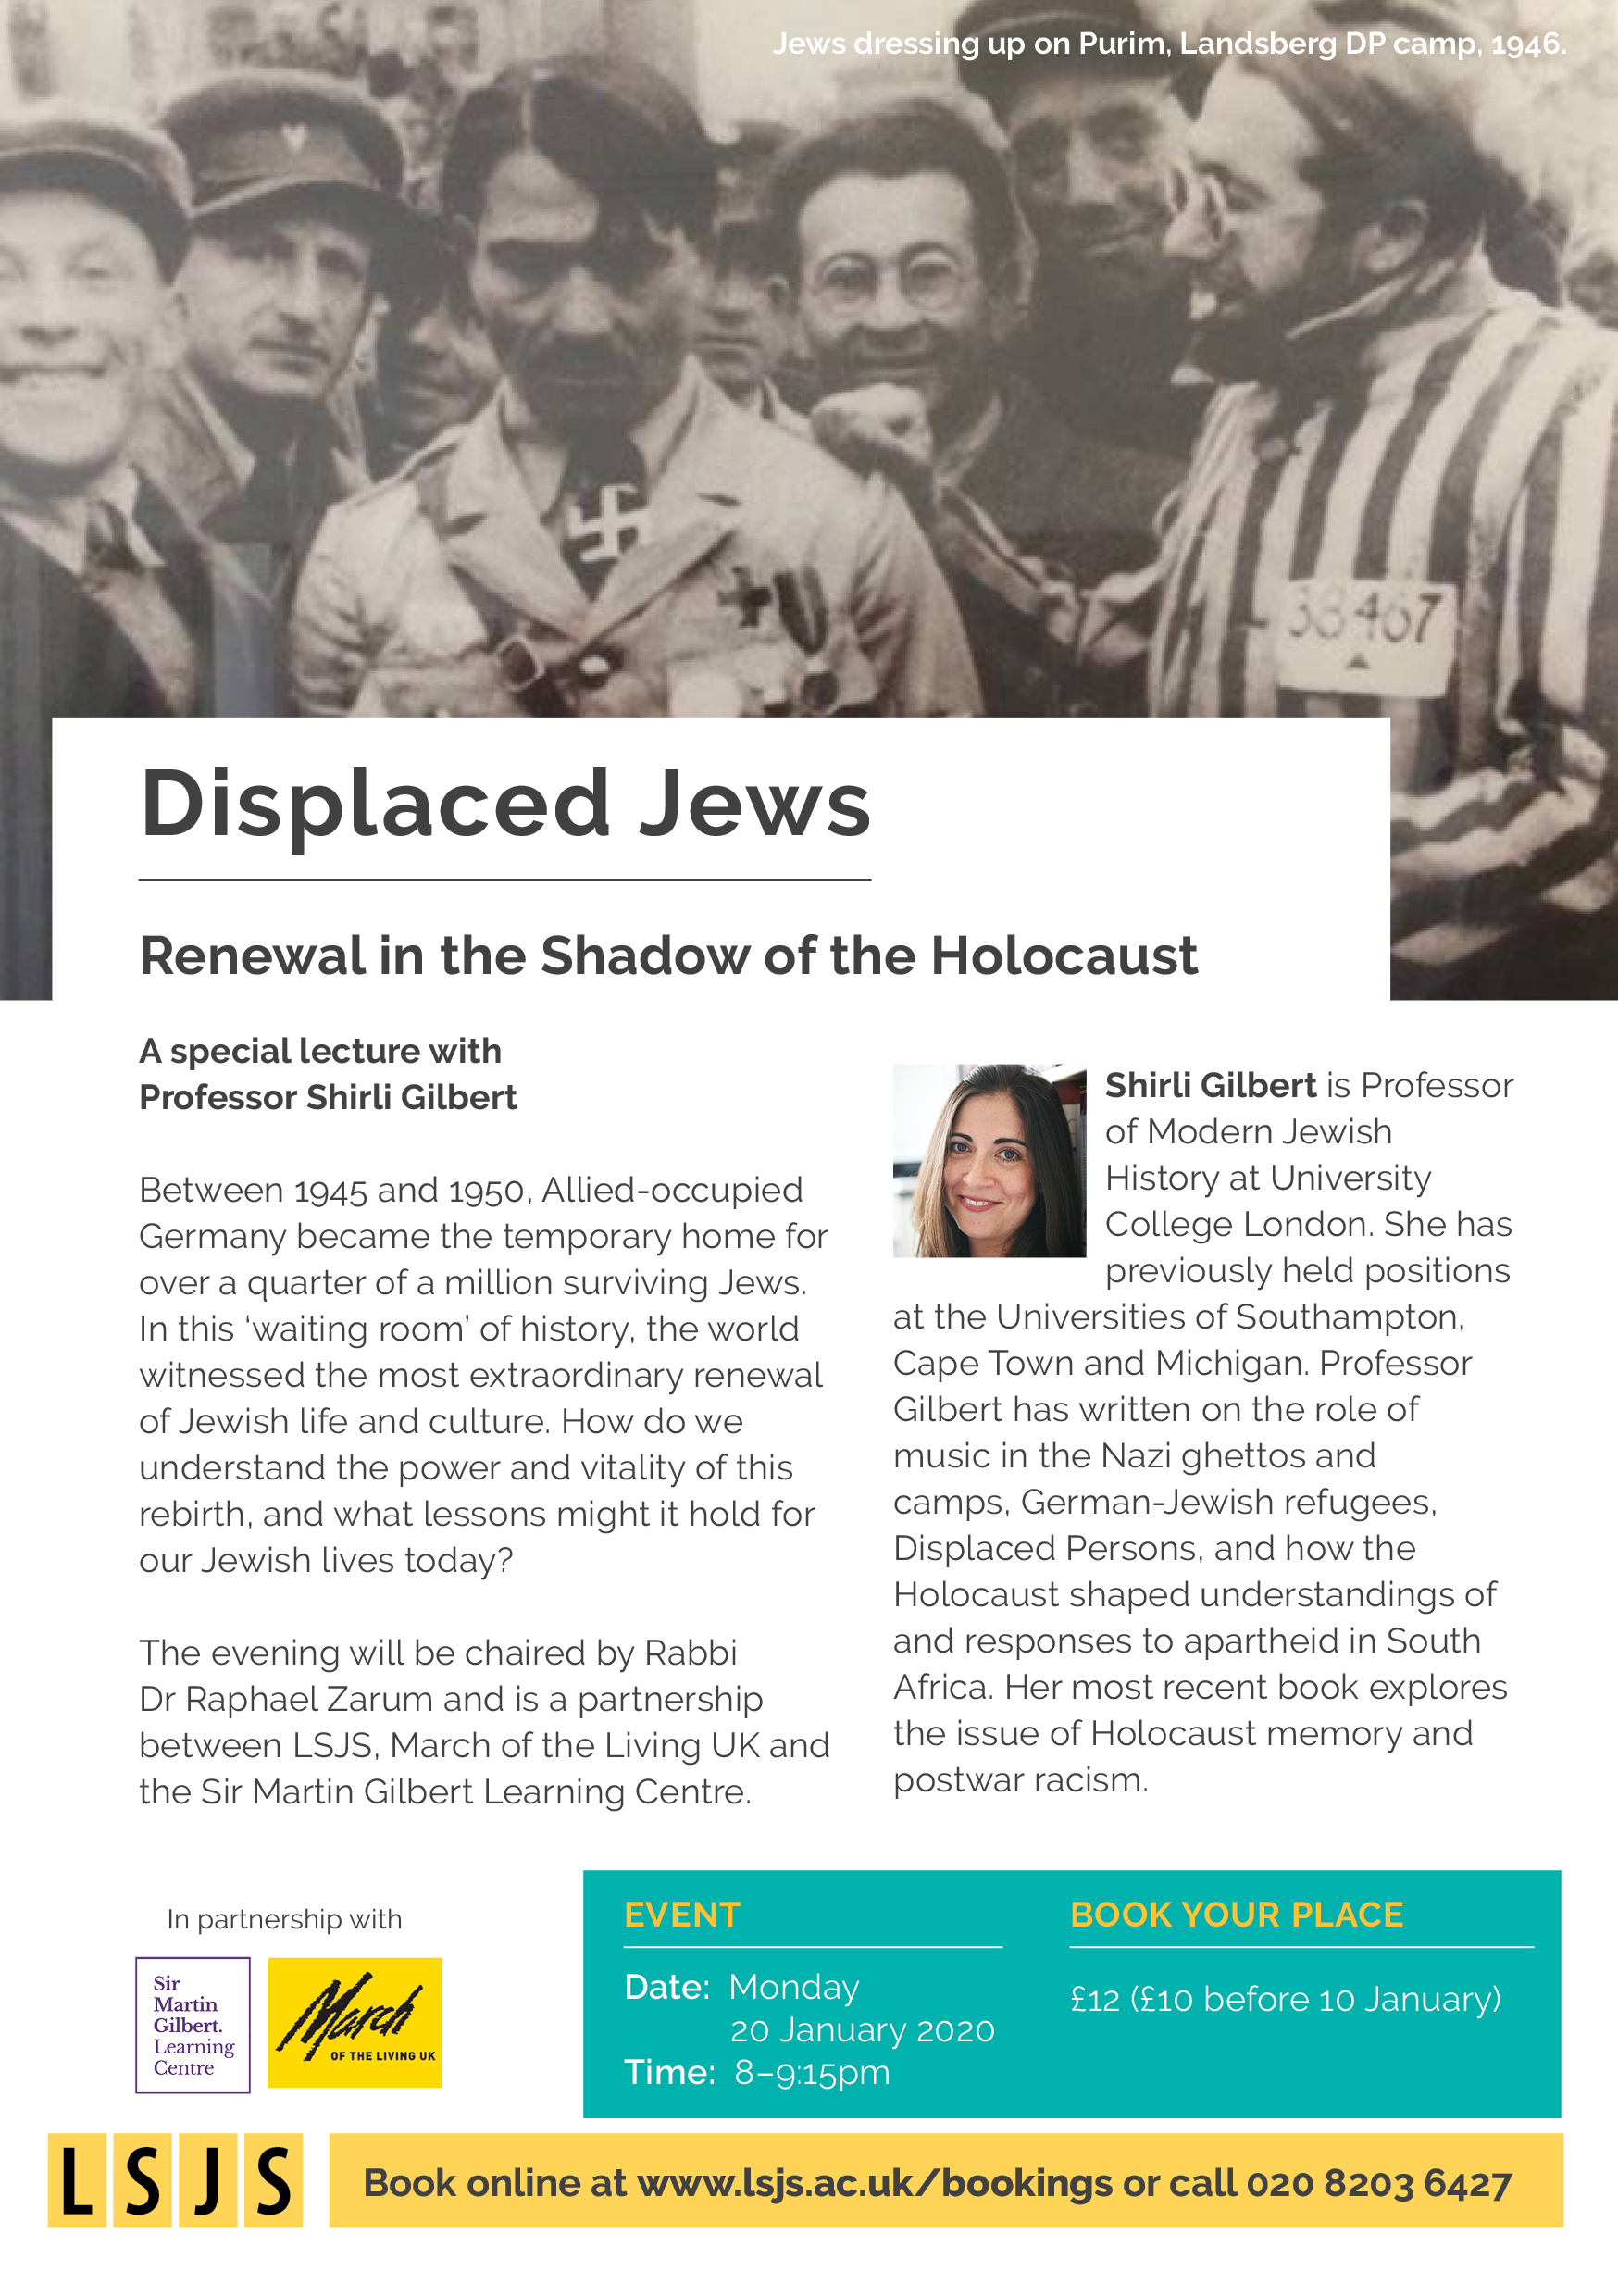 A special lecture with Professor Shirli Gilbert